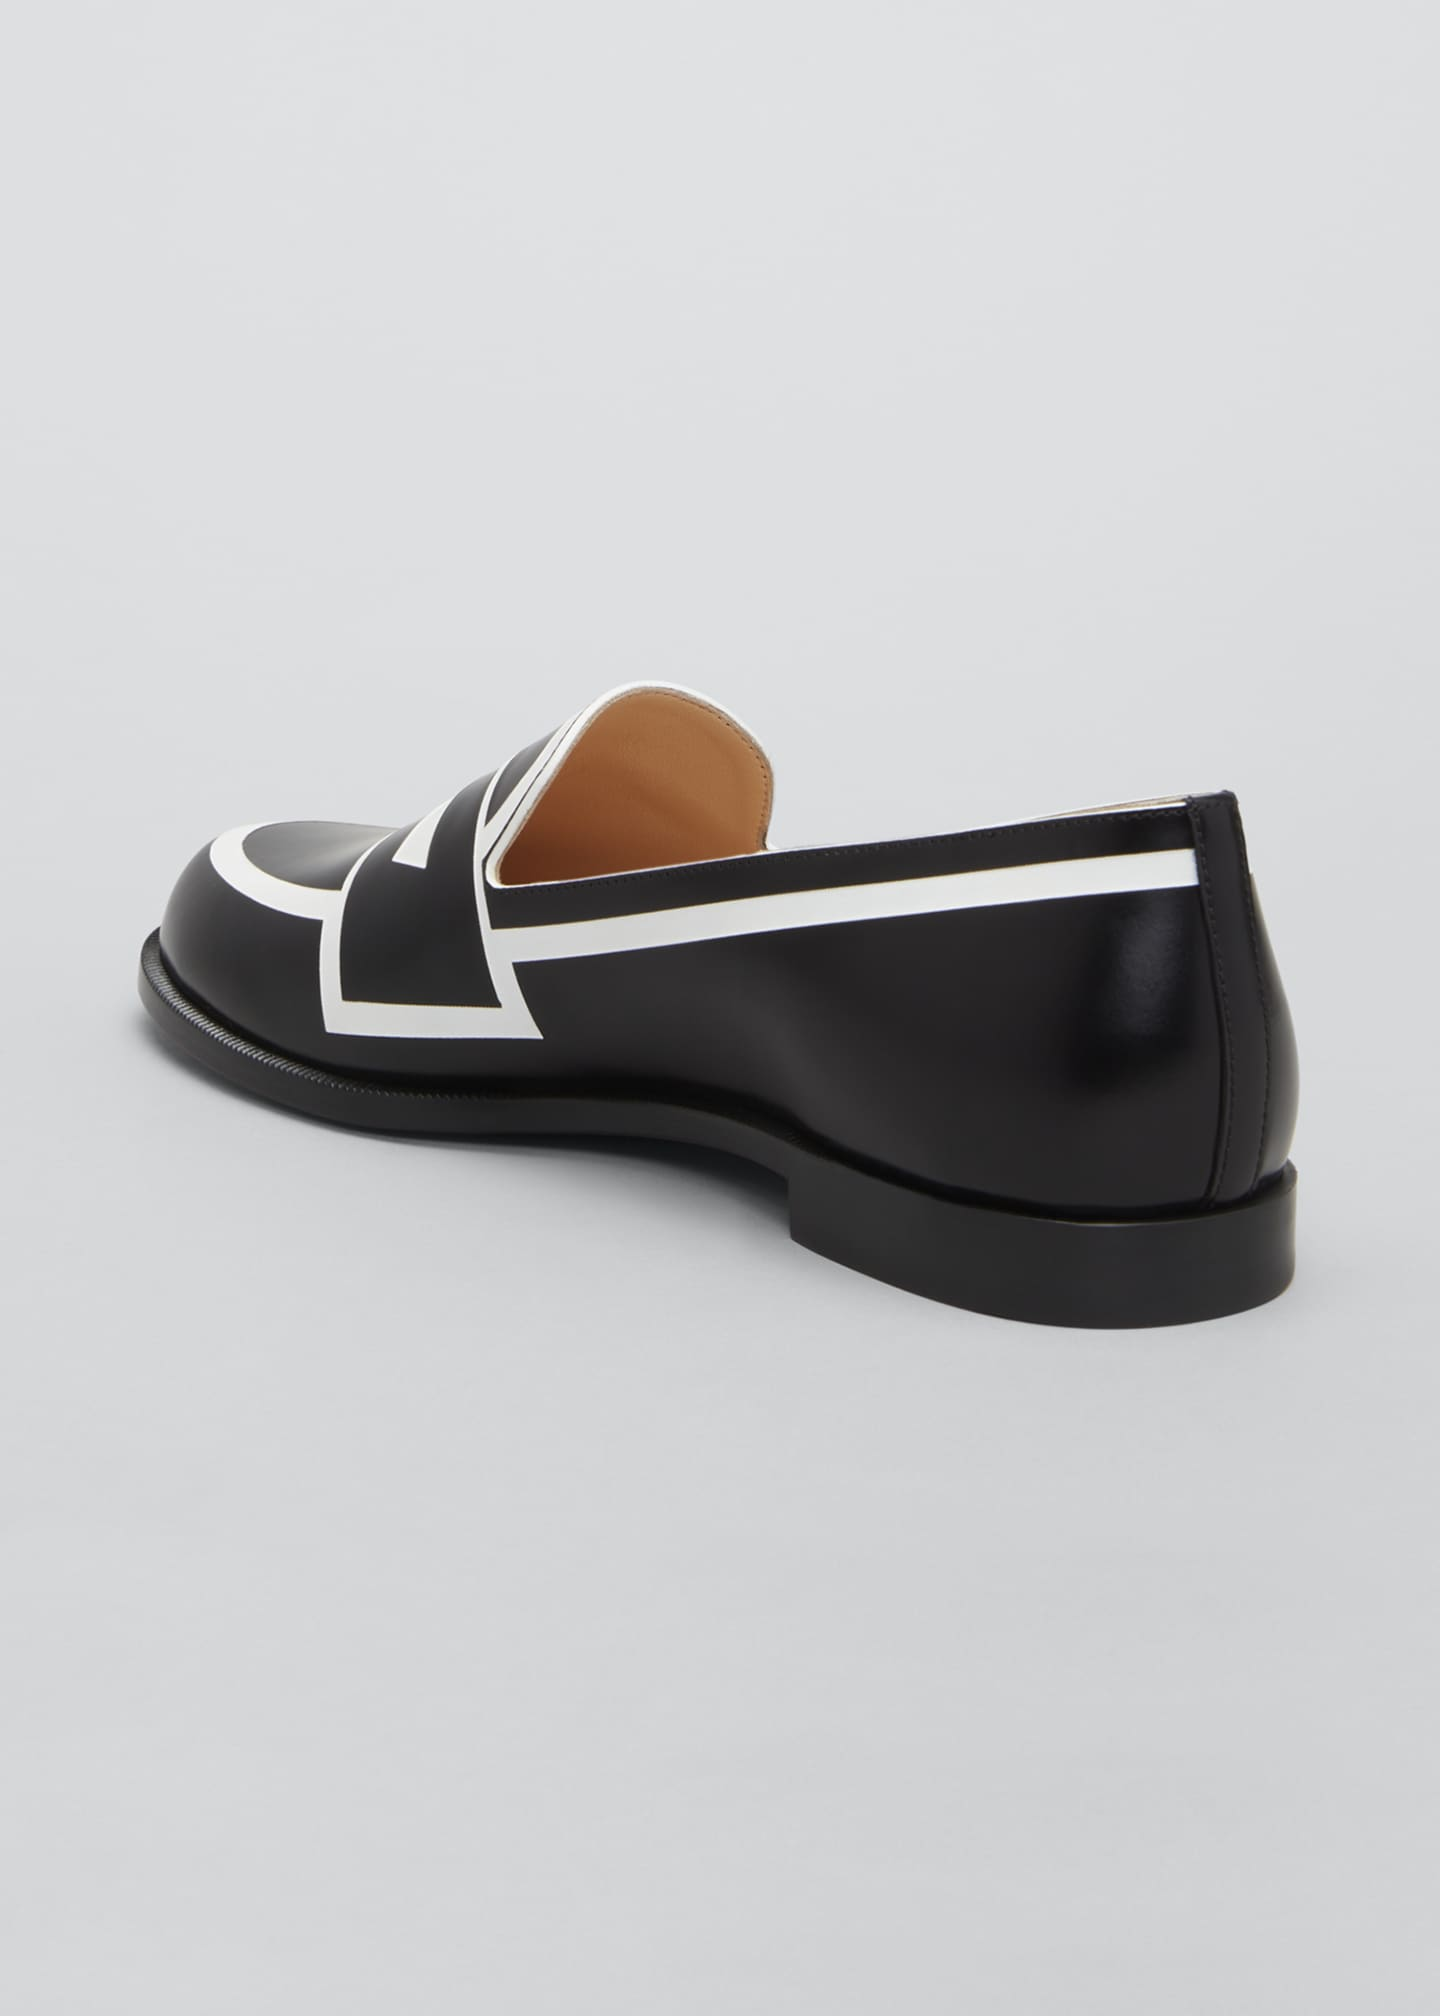 Image 2 of 3: Tromoca Flat Printed Contrast Loafers